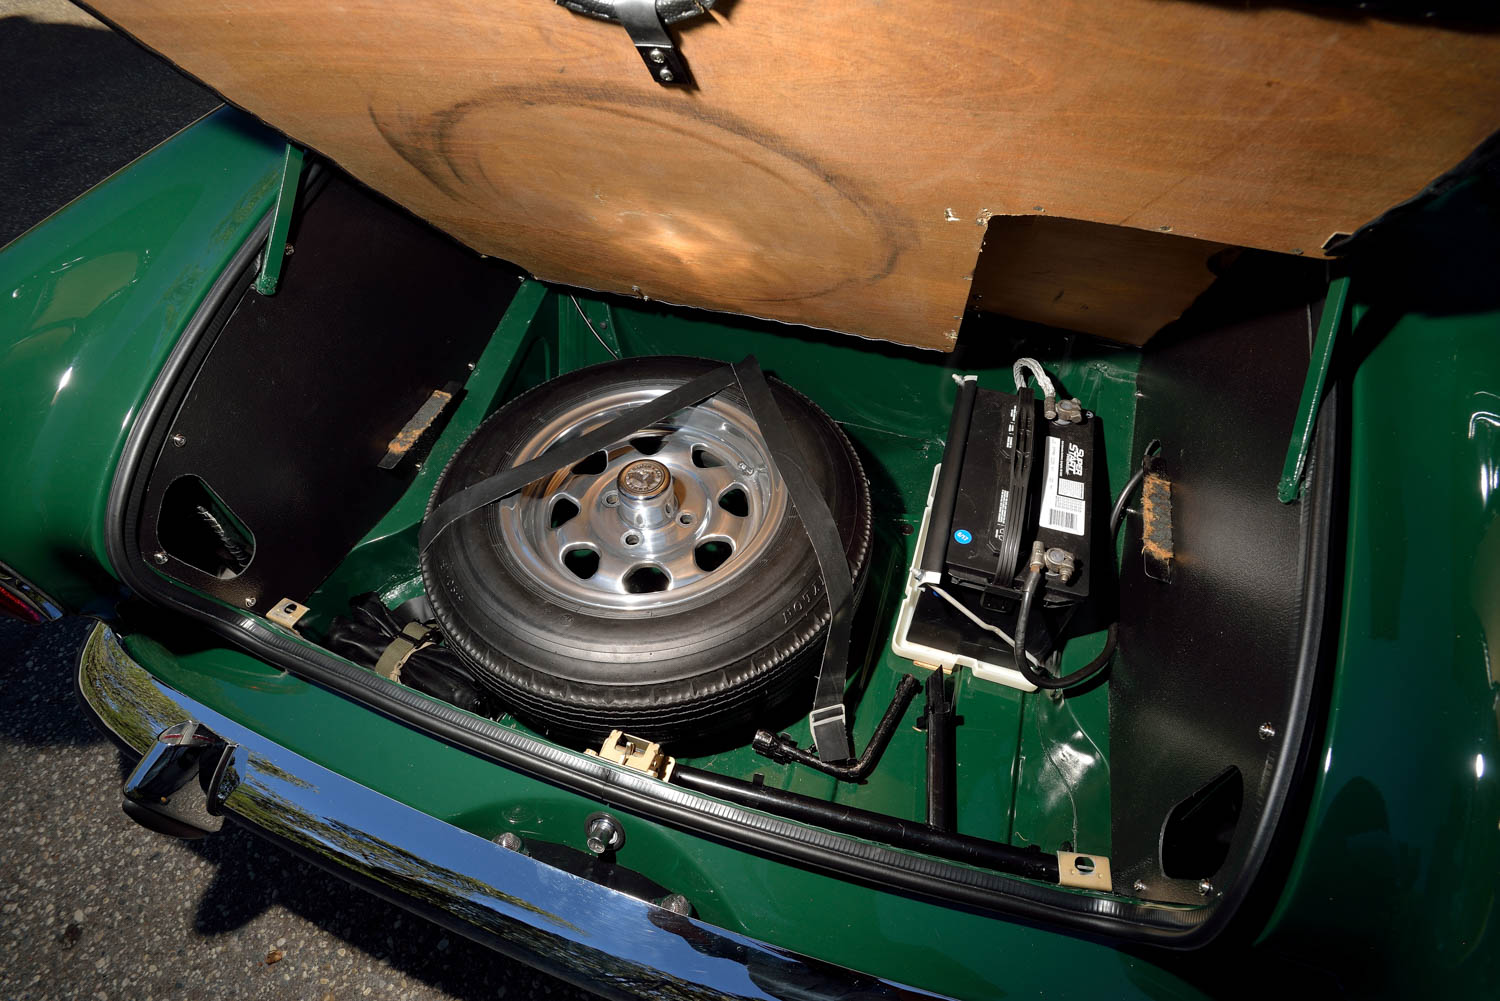 1967 Sunbeam Tiger MKII trunk